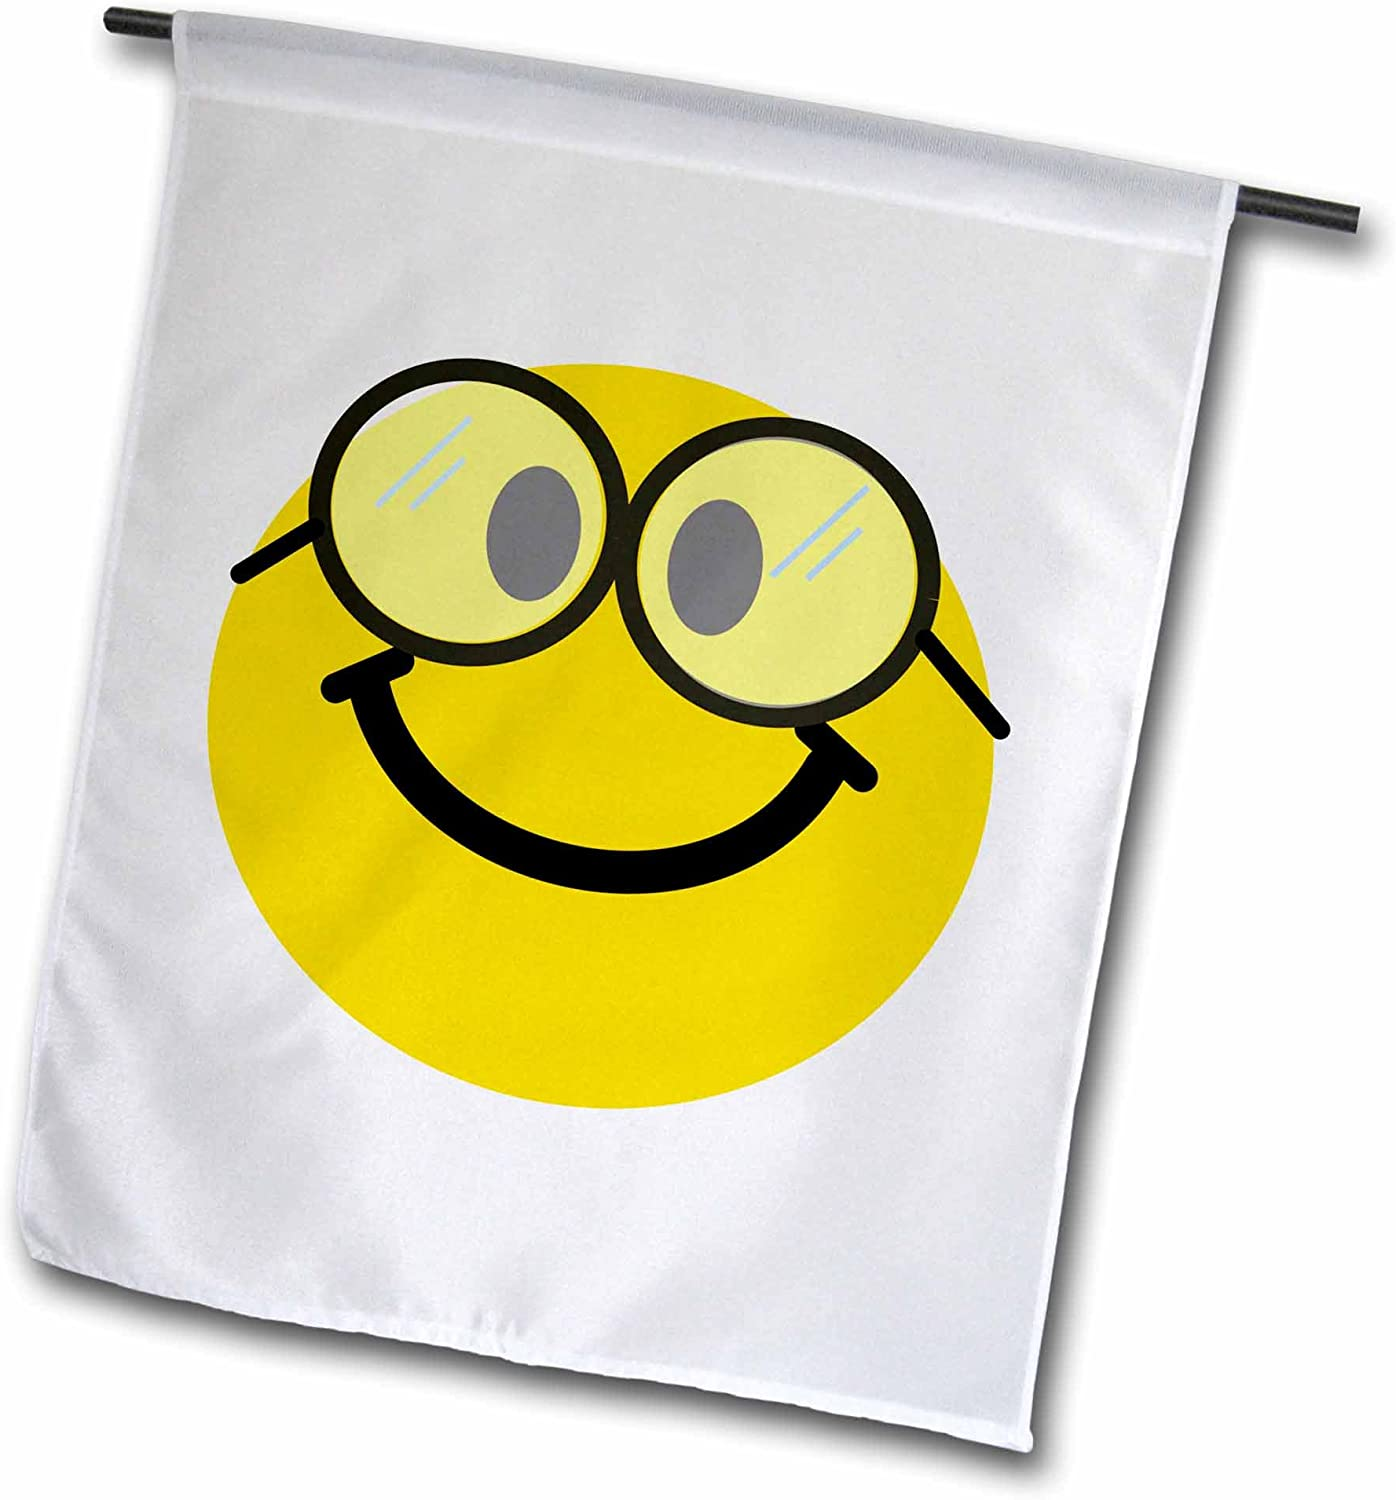 3dRose fl_113100_1 Geeky Smiley Face Cute Geek Happy Nerd Yellow Smilie with Glasses Smiling Studious Cartoon Smile Garden Flag, 12 by 18-Inch